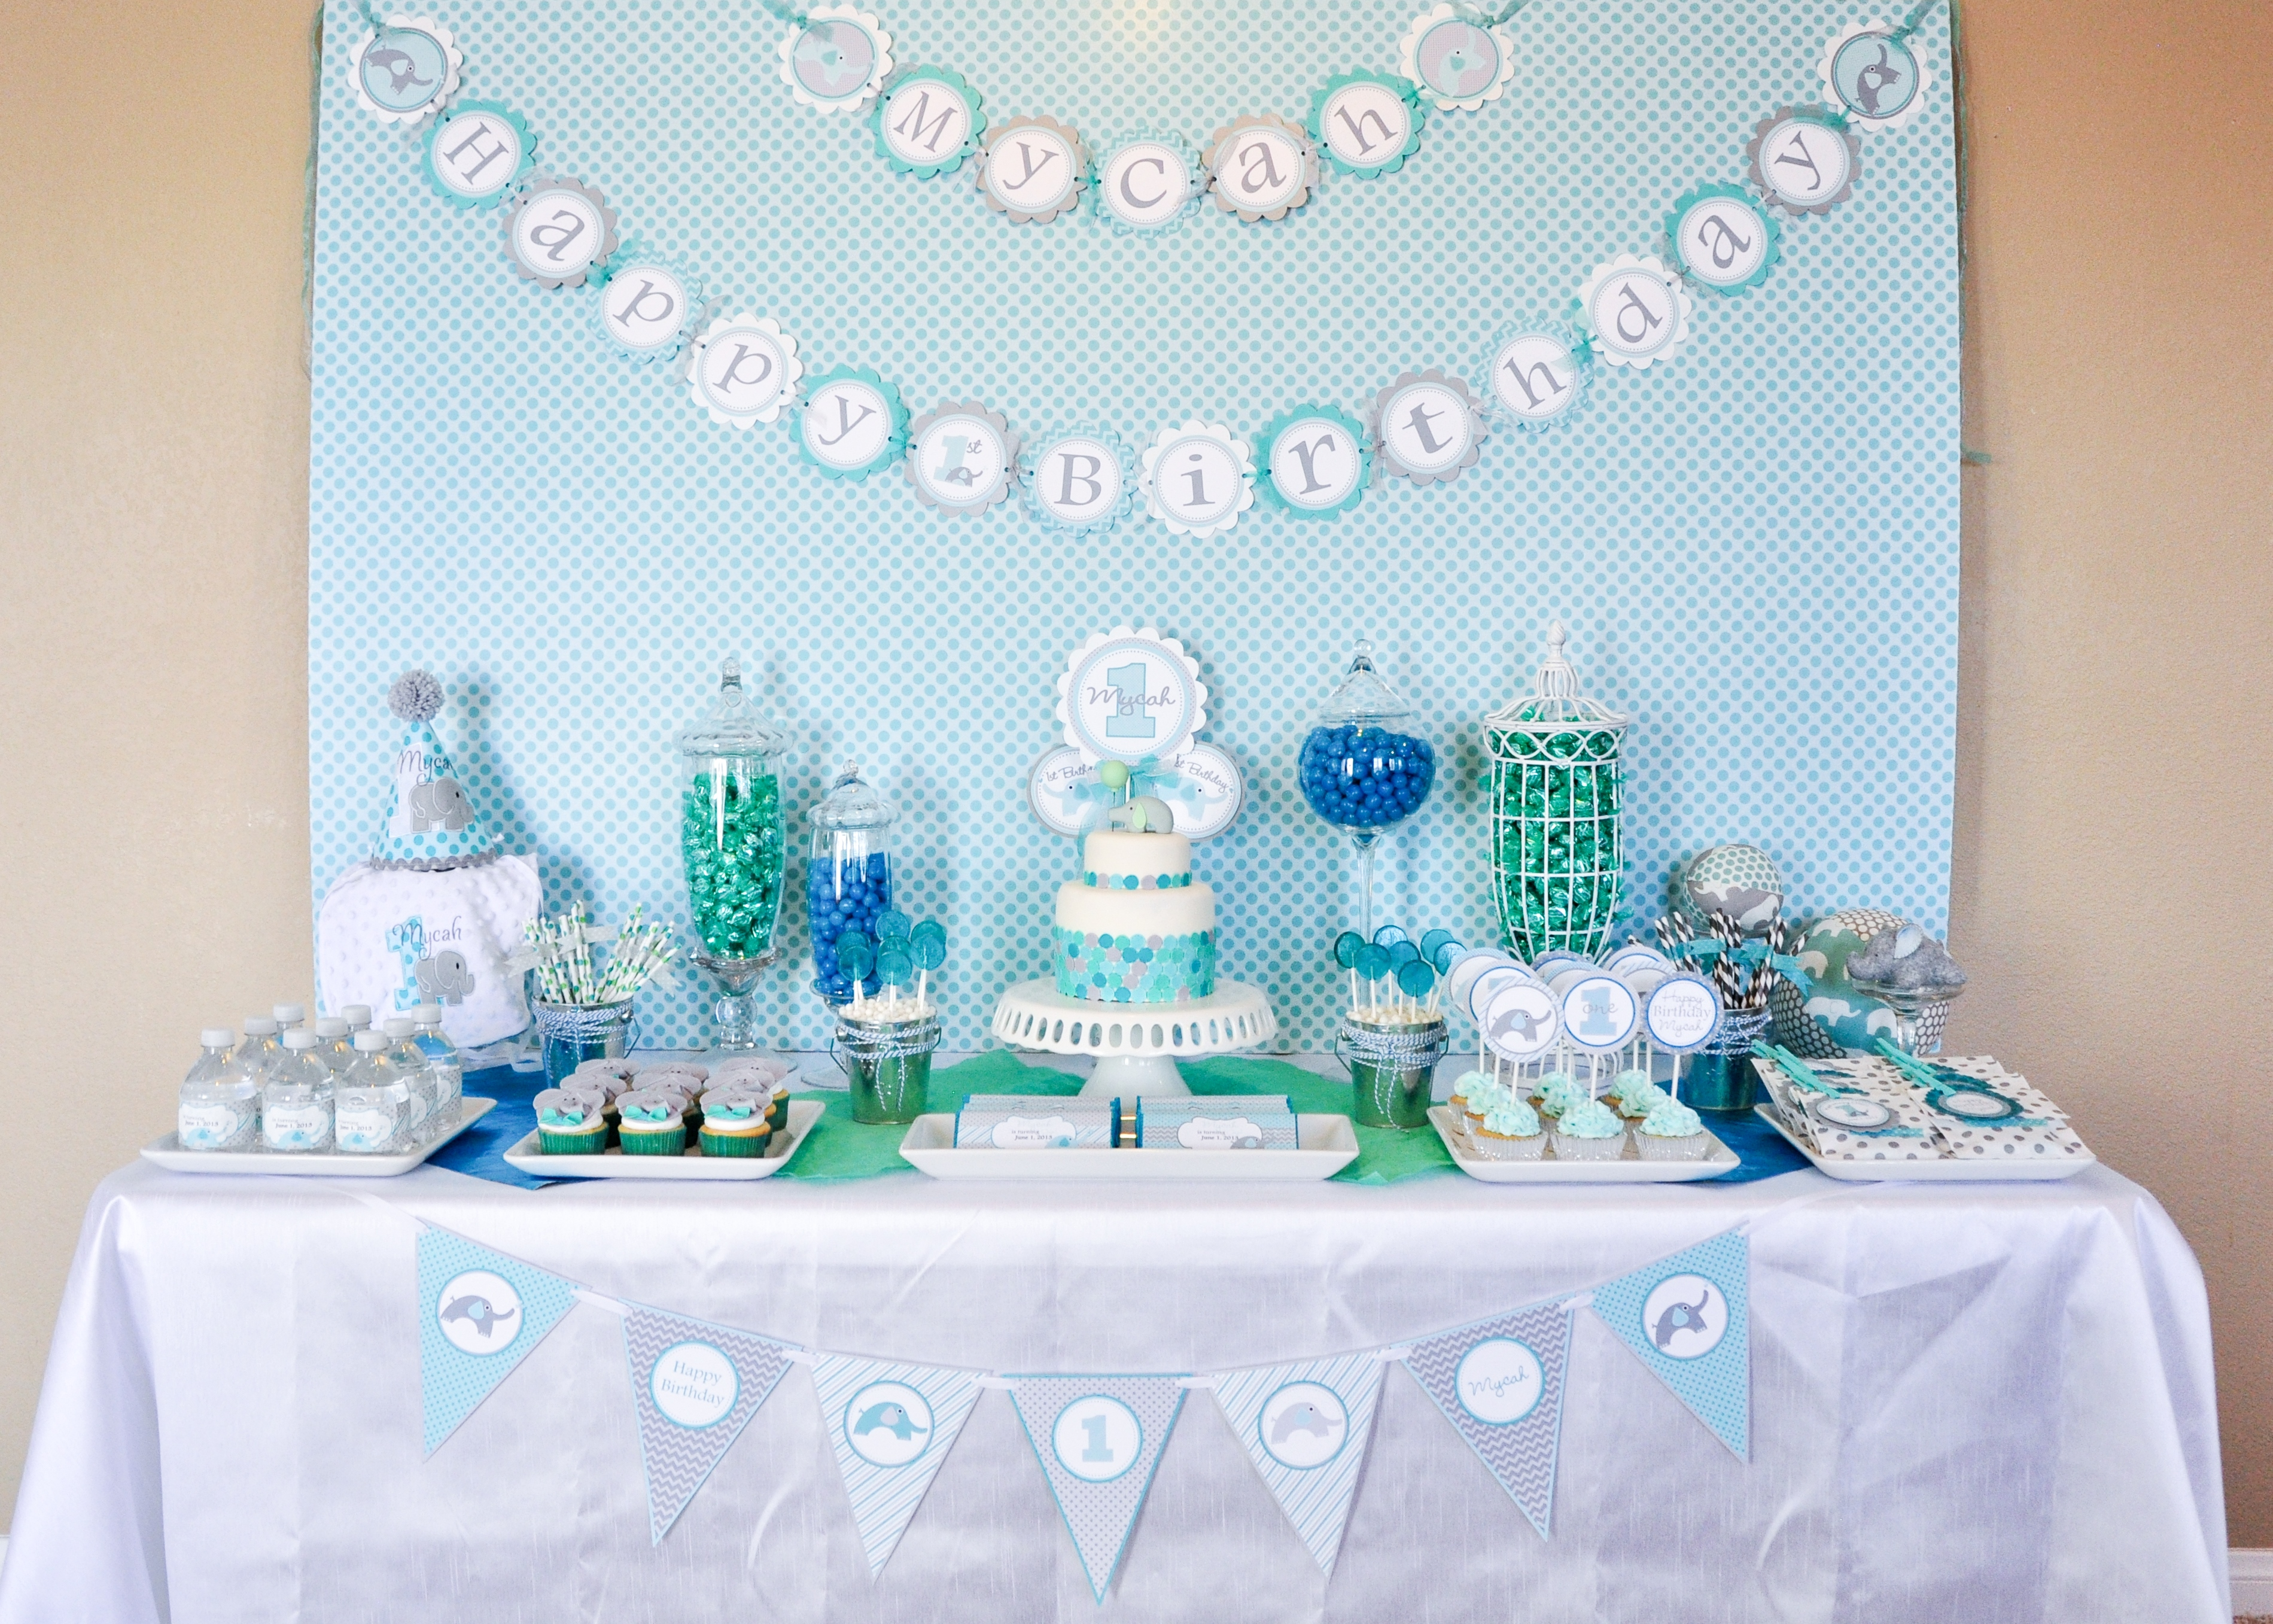 5 great ideas for elephant baby shower decorations